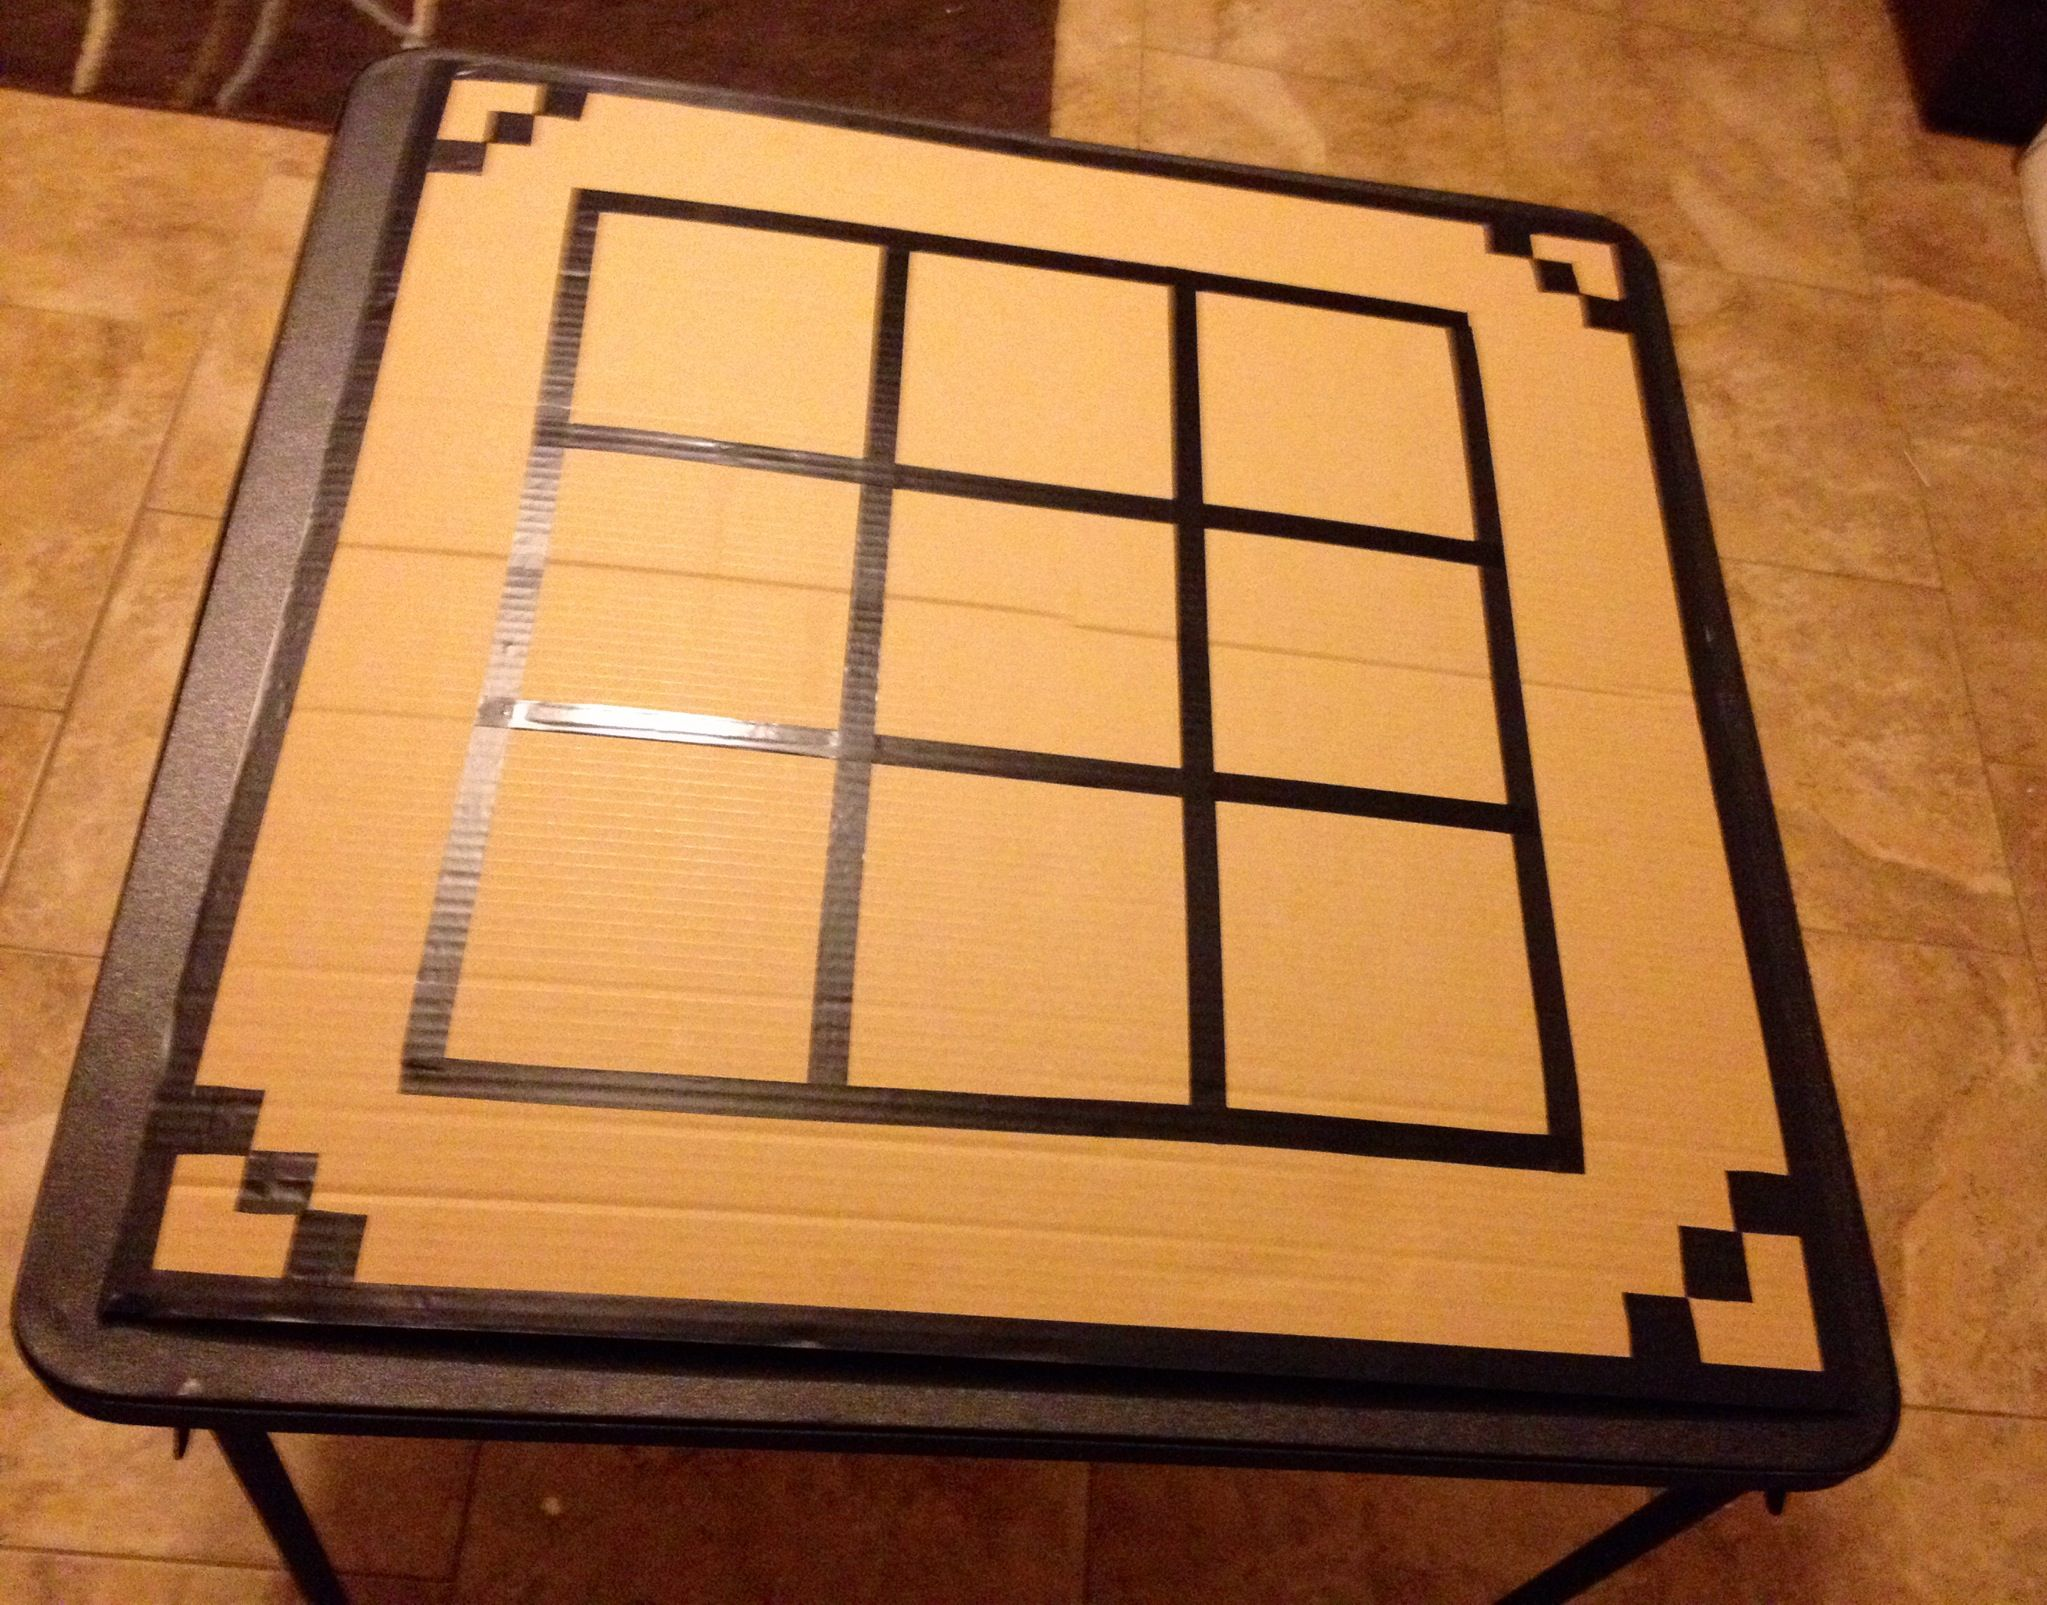 Diy Minecraft Crafting Table Using A Piece Of Cardboard And Some